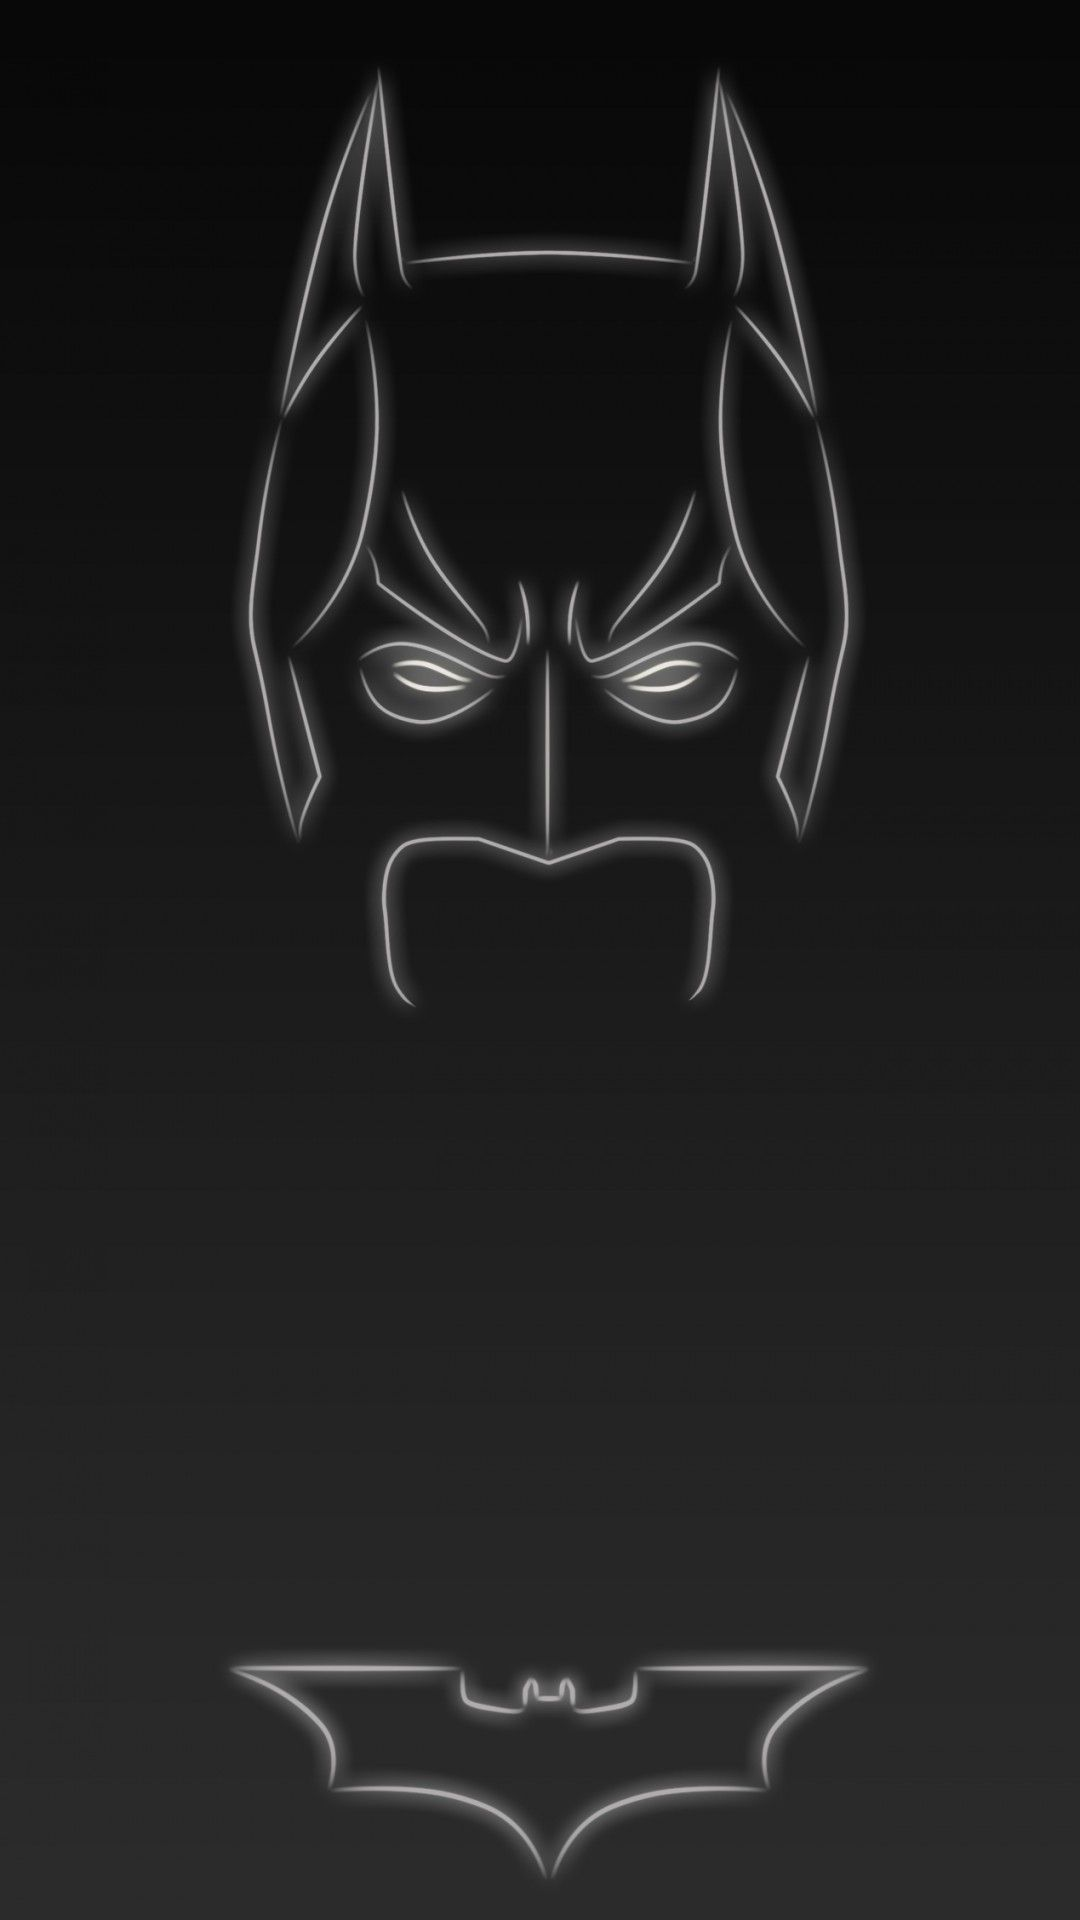 Dark Knight The Batman Tap To See More Superheroes Glow With Neon Light Apple IPhone